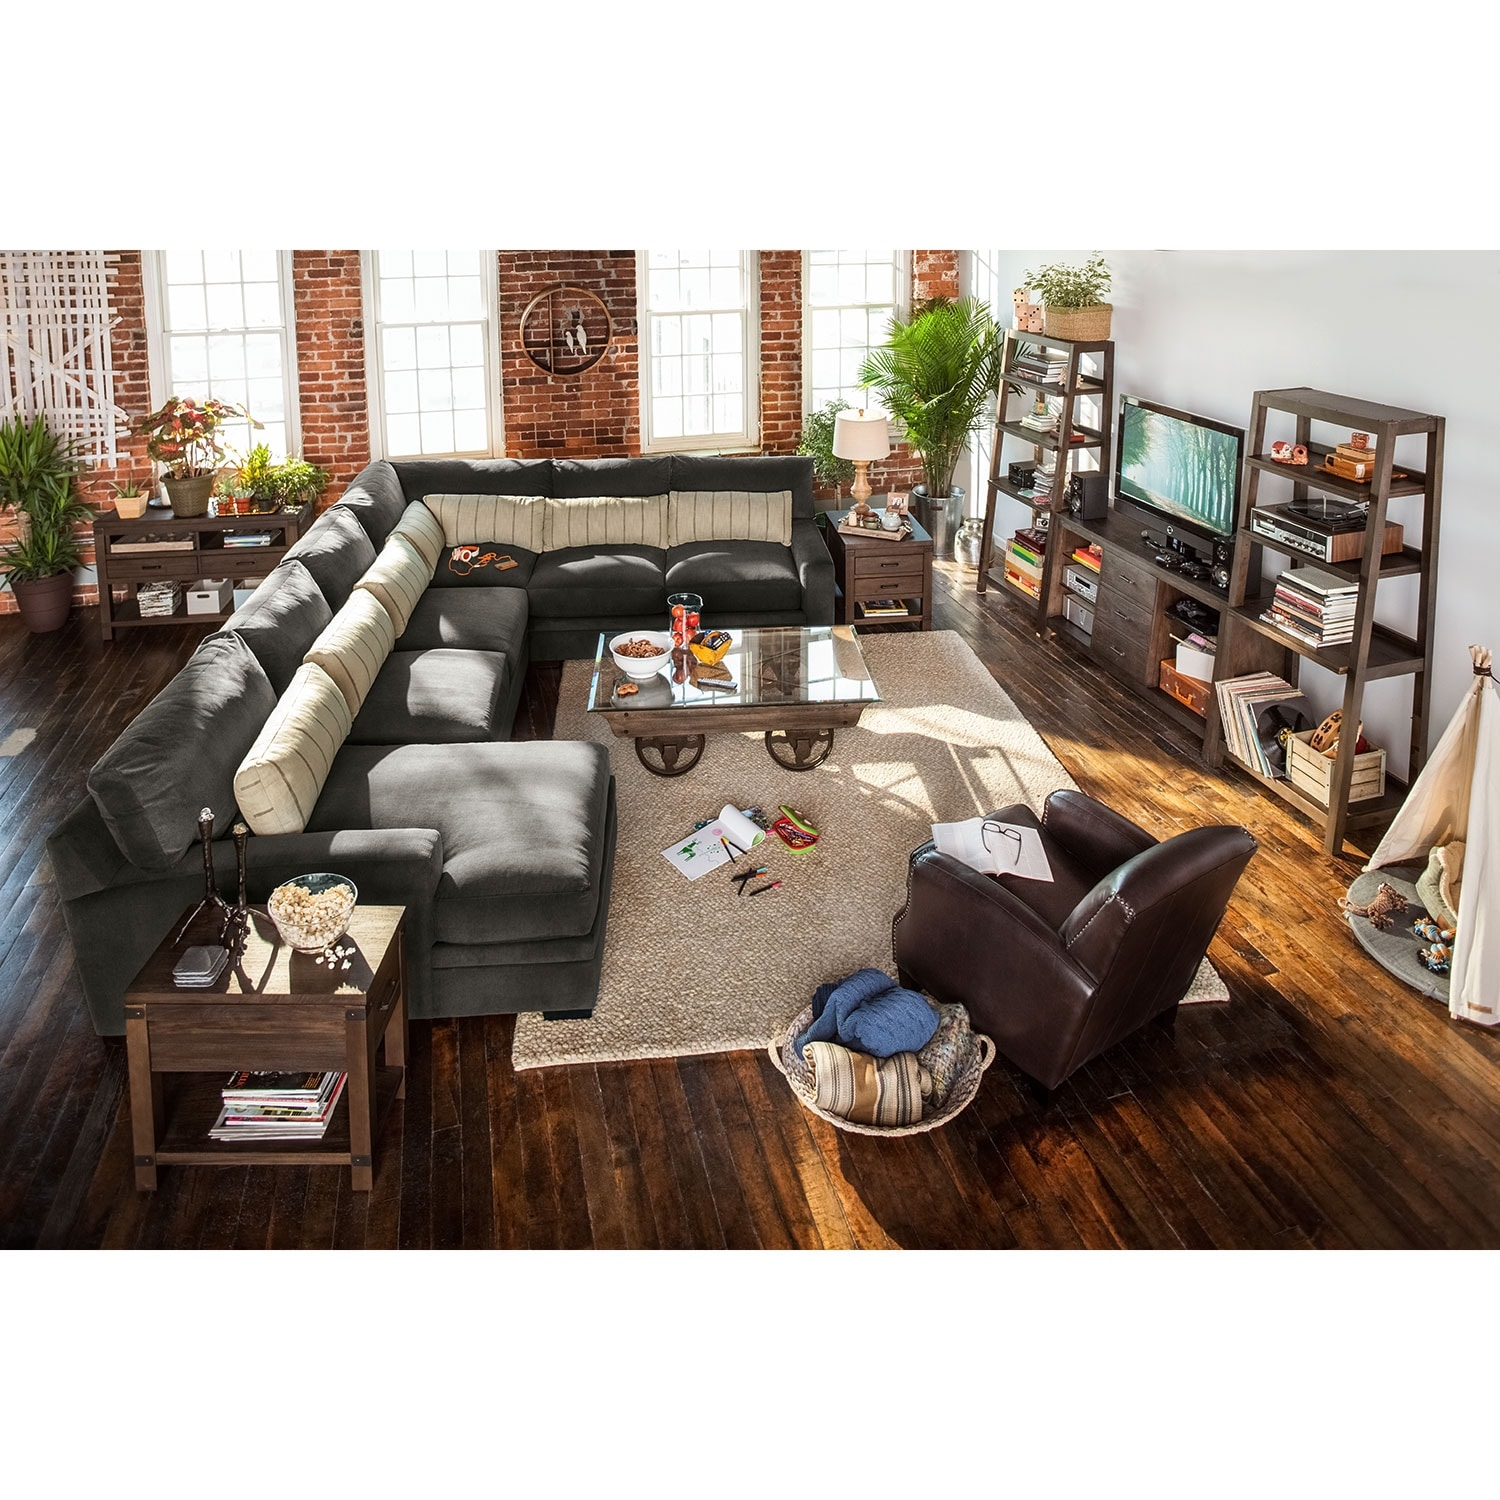 Ventura 4 Piece Sectional with Left Facing Chaise Charcoal